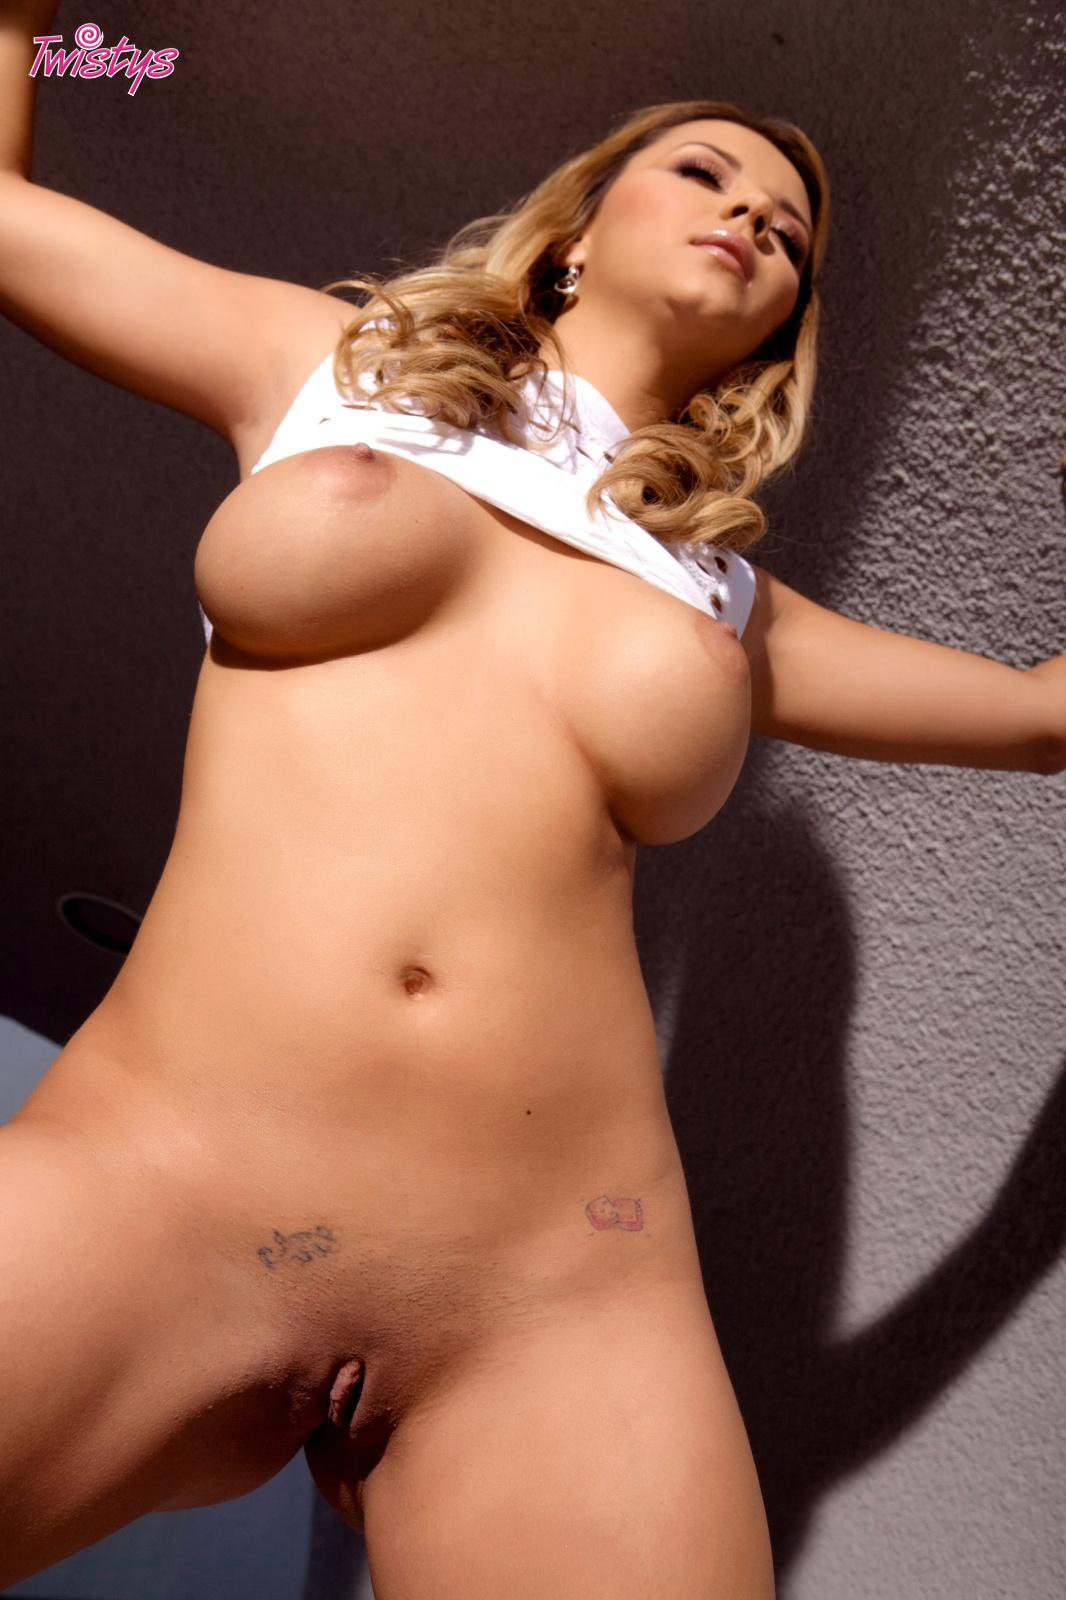 Ashlynn Brooke In Sexy Dress Posing And Showing Off Her -4630